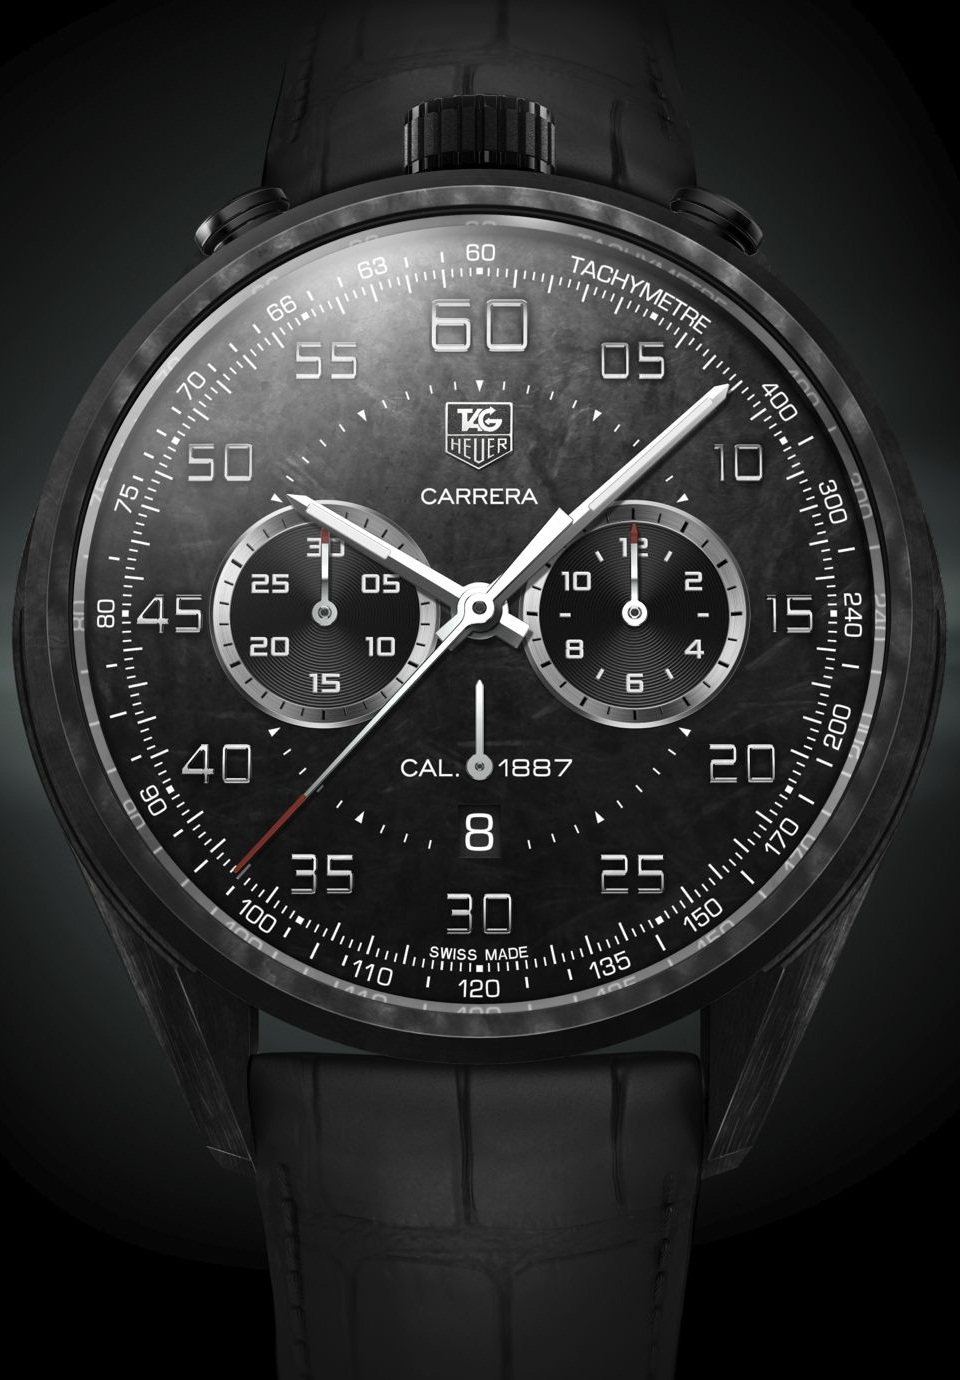 TAG Heuer Carrera Carbon Matrix Composite Concept Chronograph